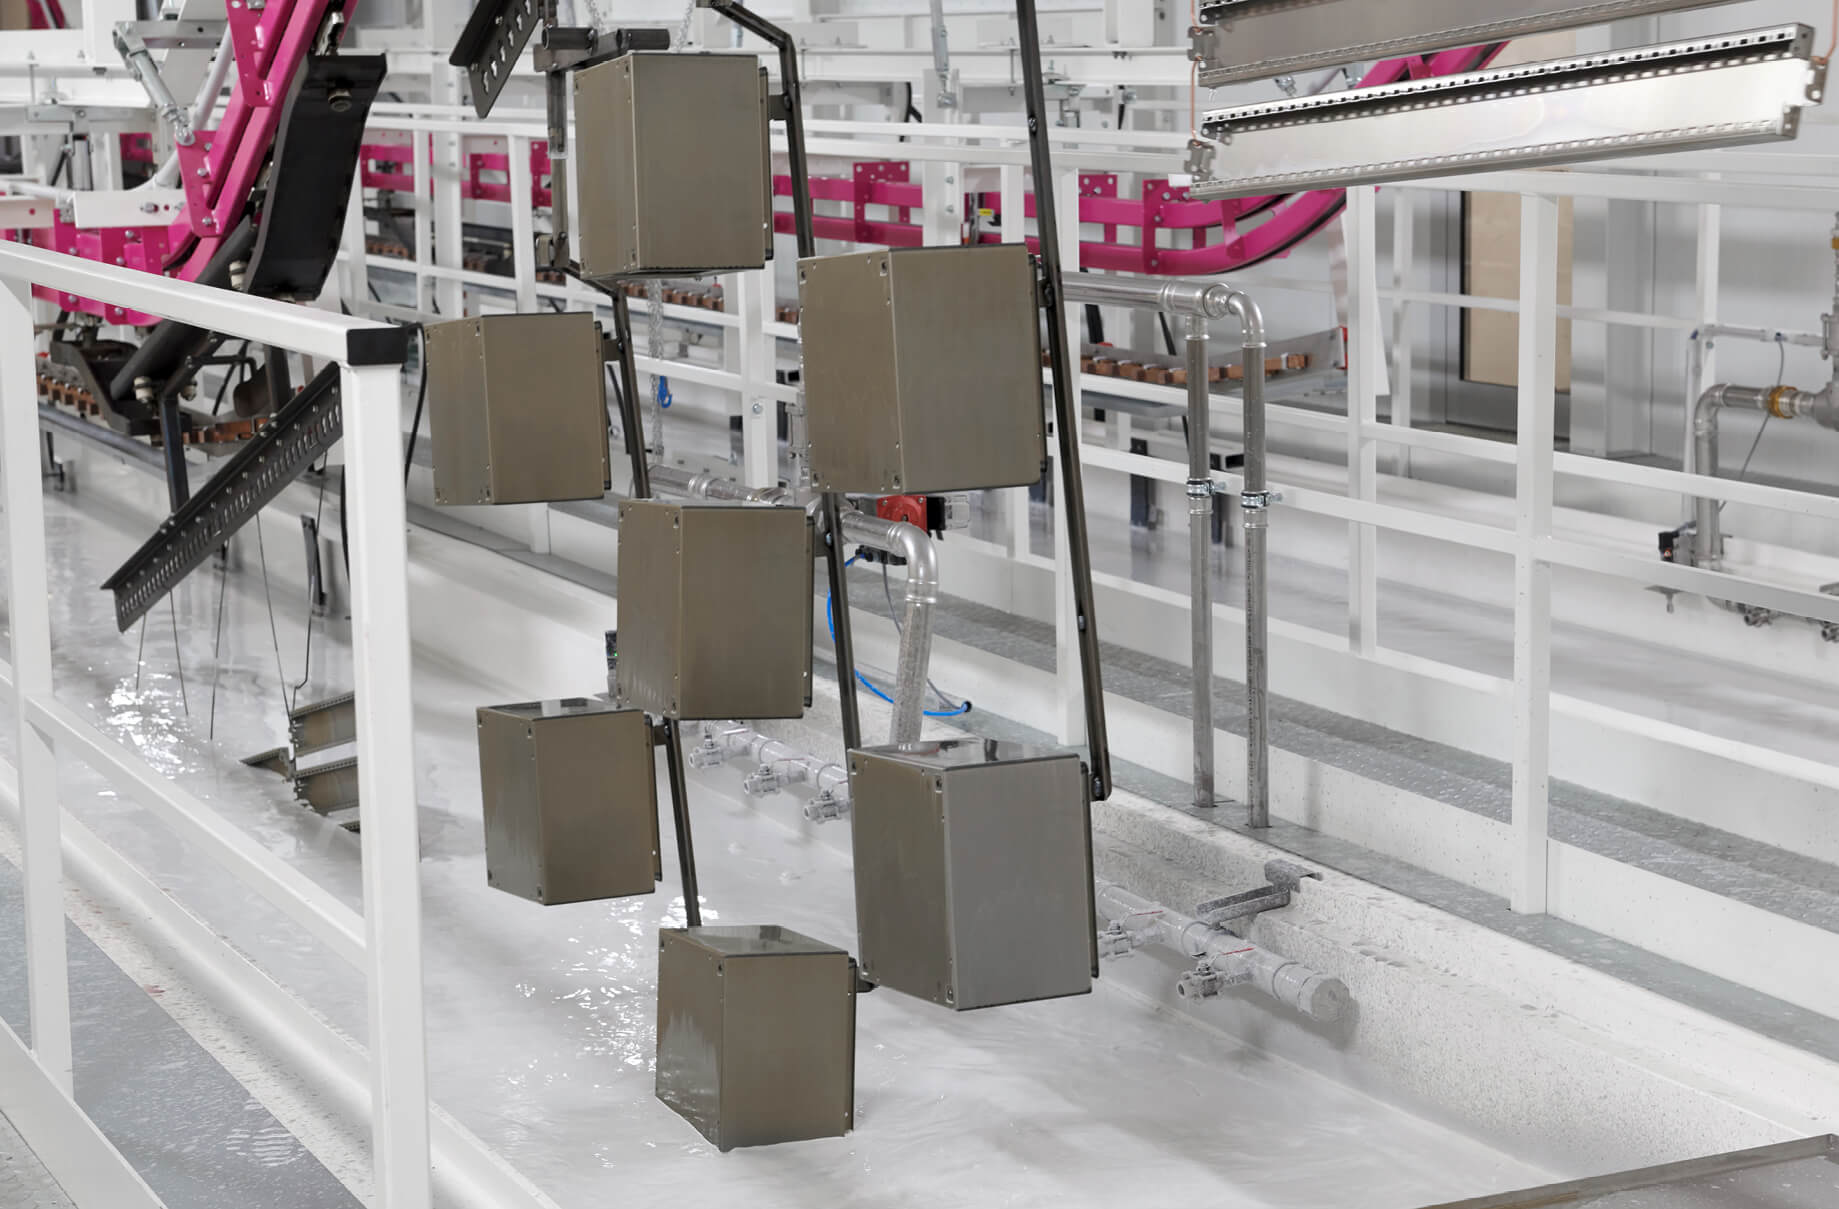 The manufactured enclosures are mounted on special fixtures before being immersed in the primer that will protect them from corrosion. The indestructible outer skin is then finished with a powder coating.